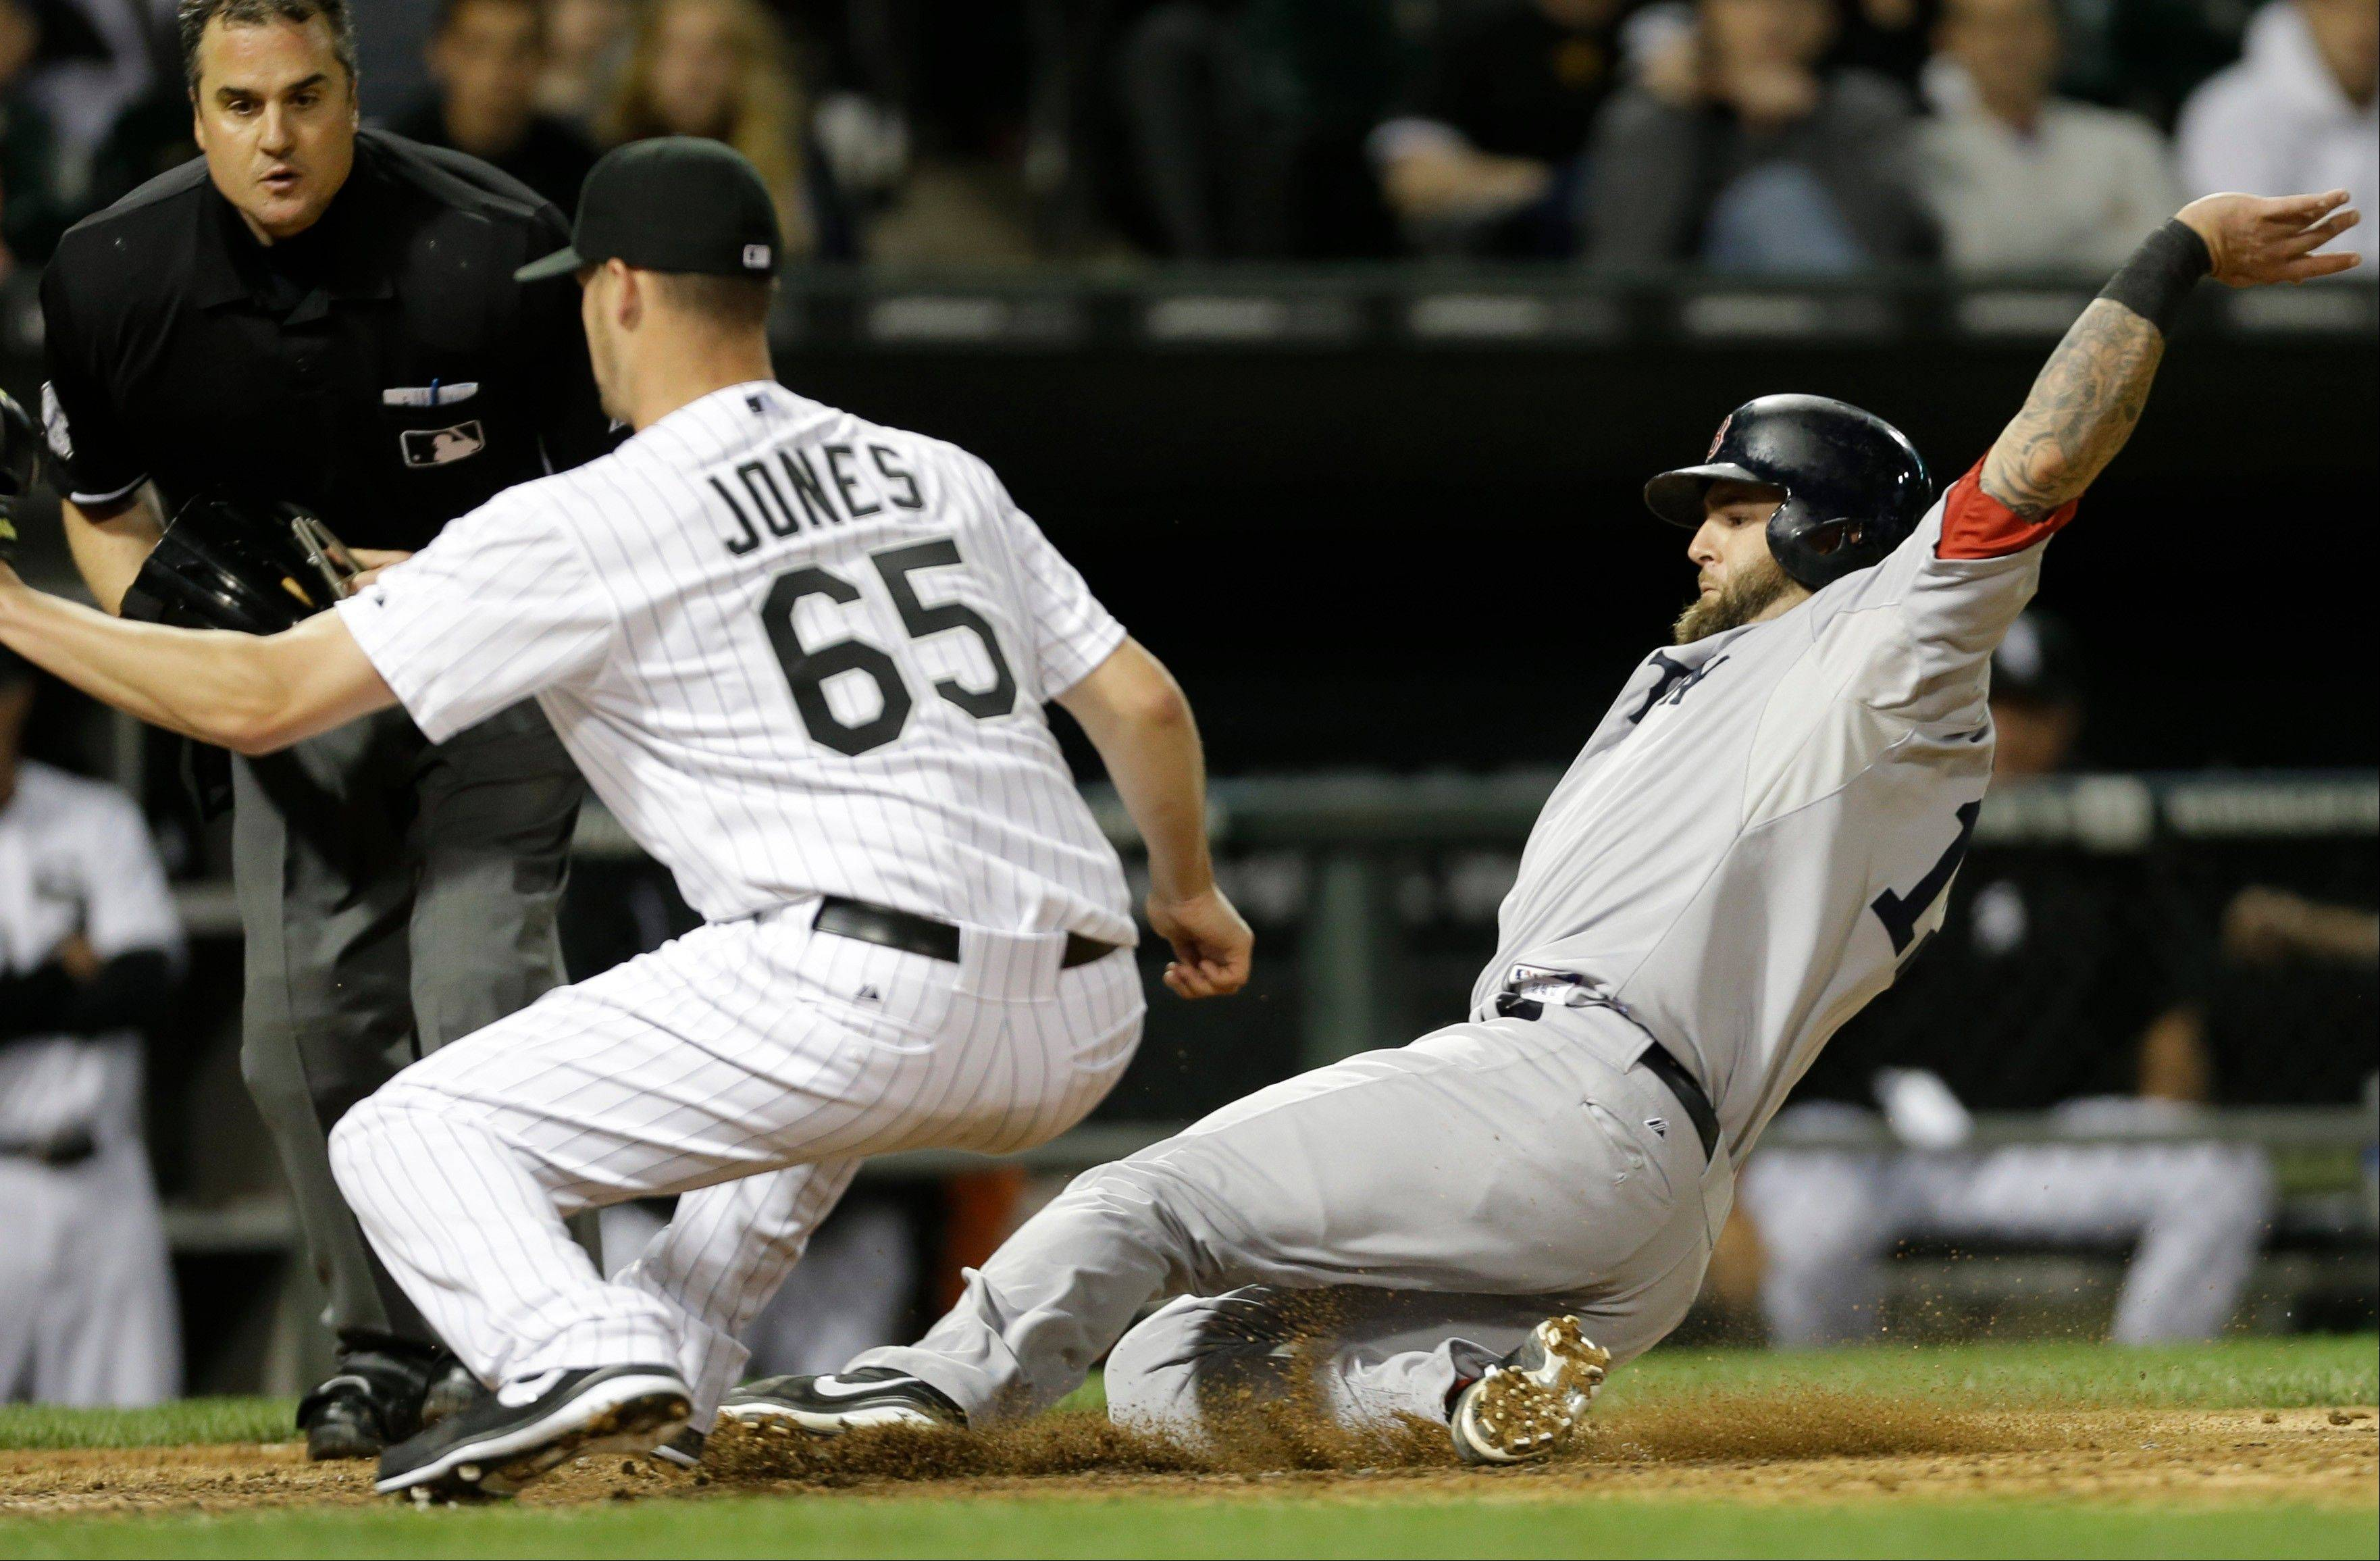 Boston Red Sox's Mike Napoli, right, scores after a passed ball as Chicago White Sox relief pitcher Nate Jones (65) waits for the ball during the eighth inning of a baseball game in Chicago, Wednesday, May 22, 2013. (AP Photo/Nam Y. Huh)